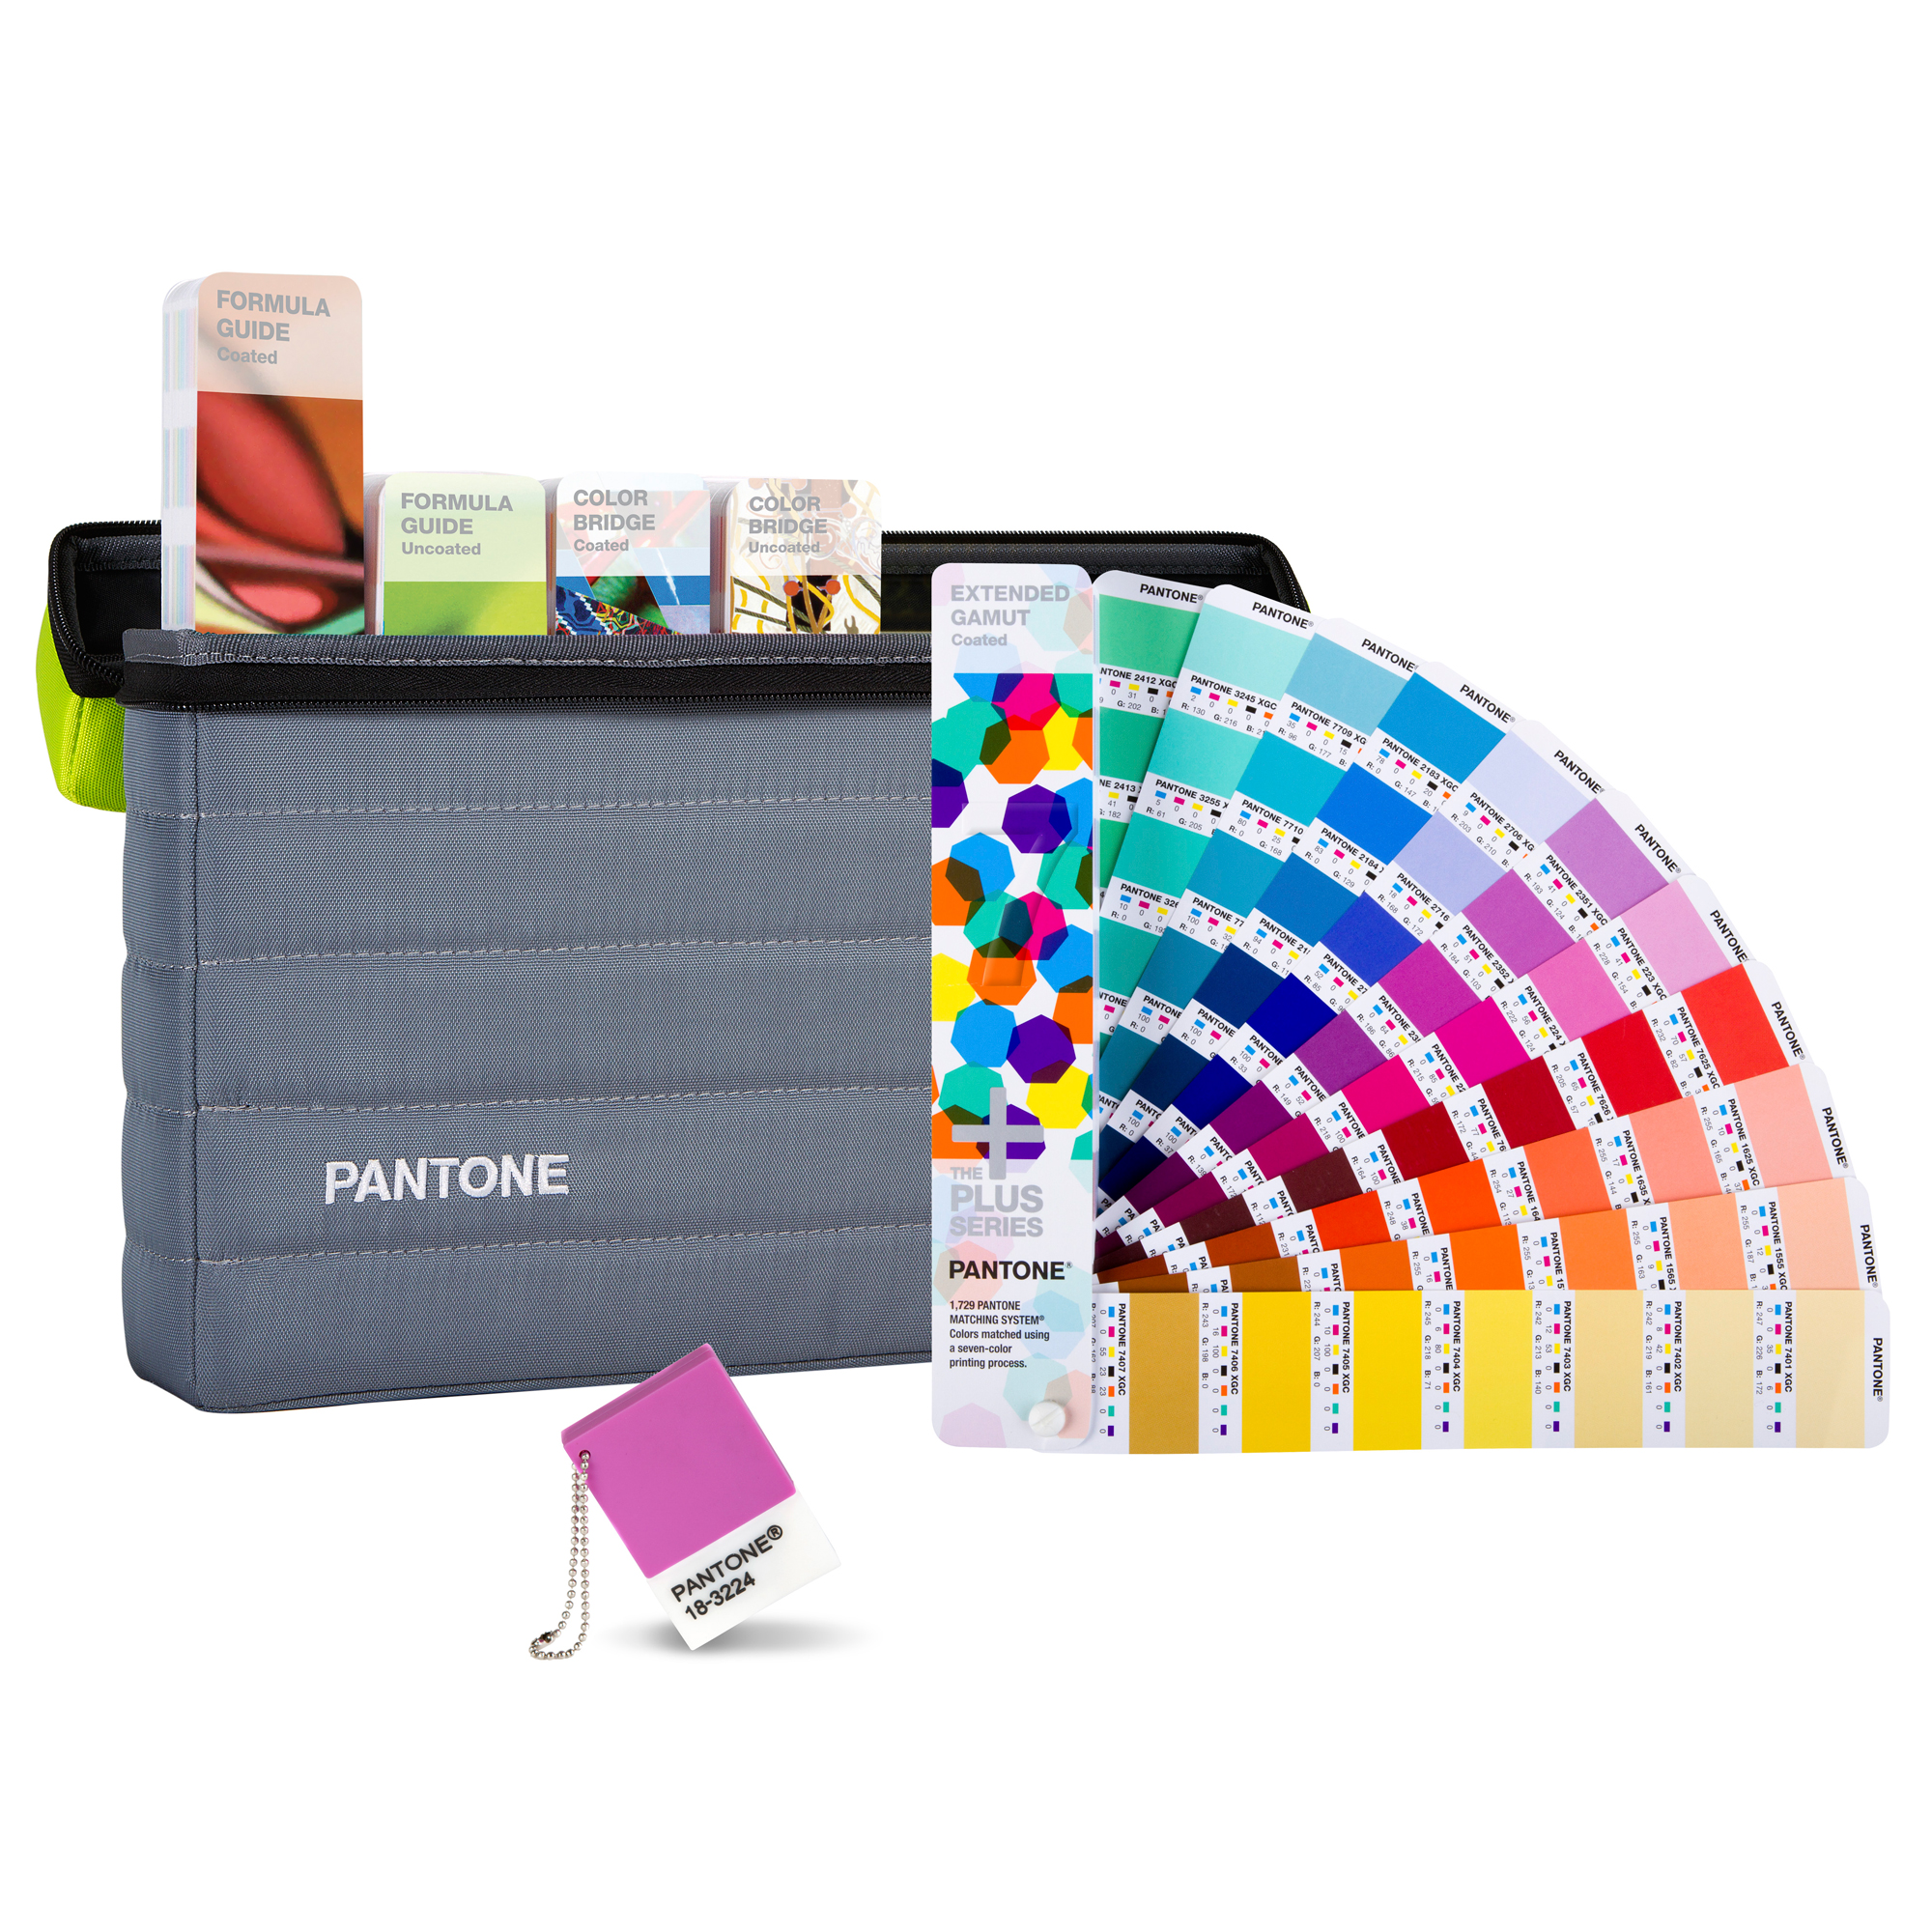 Pantone TPG Specifier and Guide Supplements